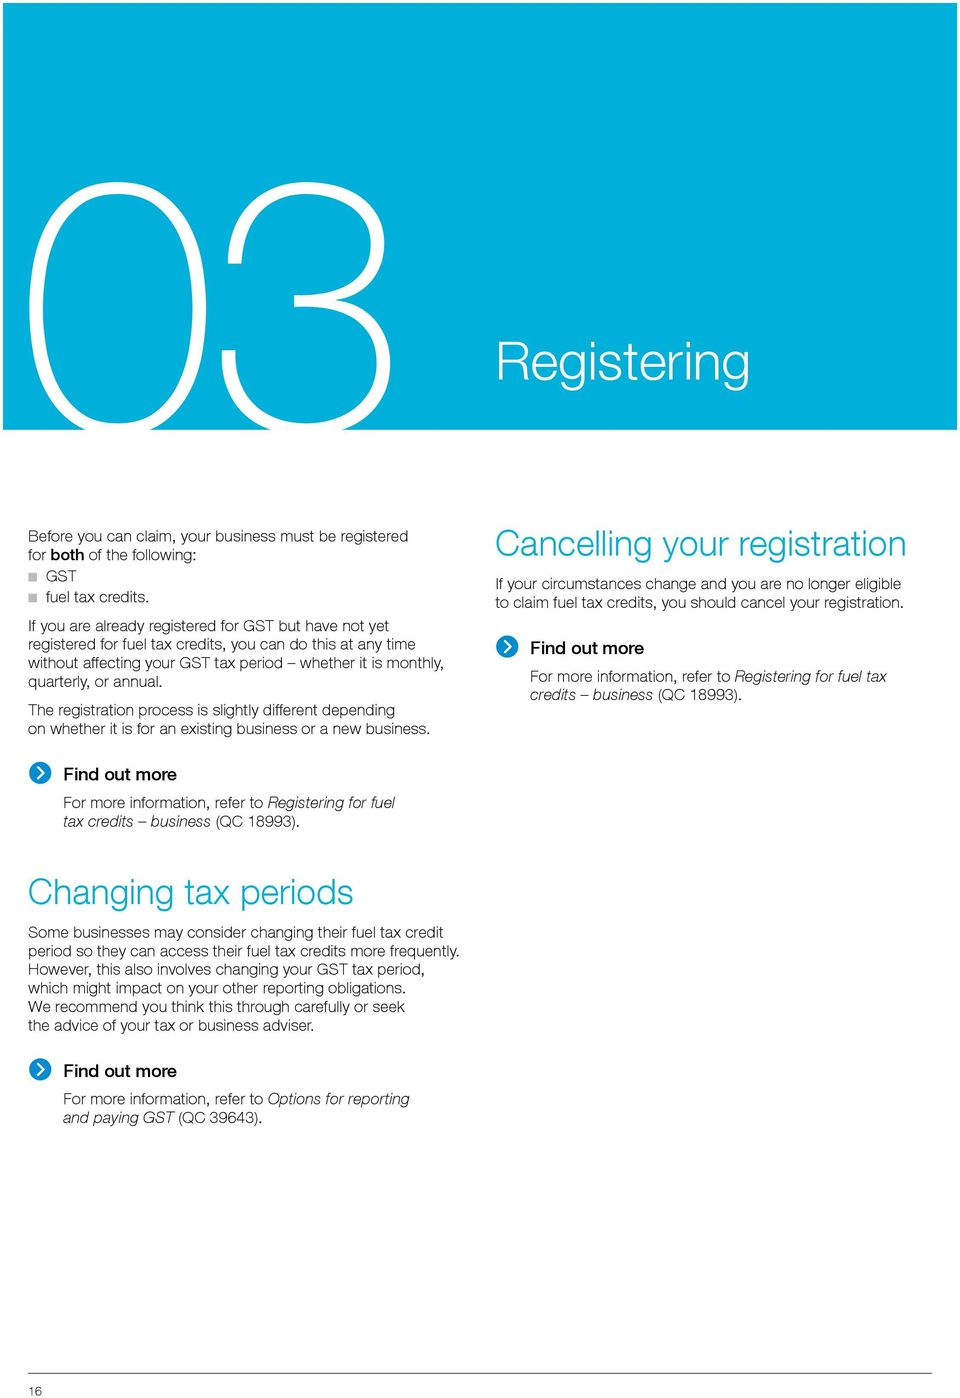 The registration process is slightly different depending on whether it is for an existing business or a new business.